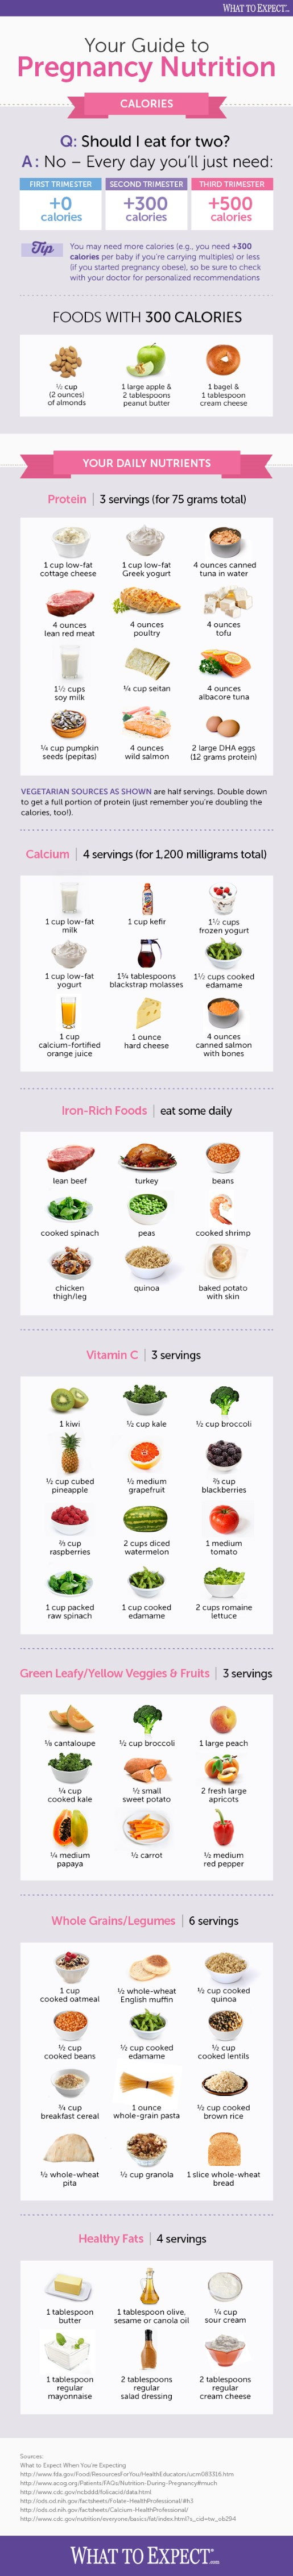 Pregnancy Nutrition 101 Infographic | What to Expect